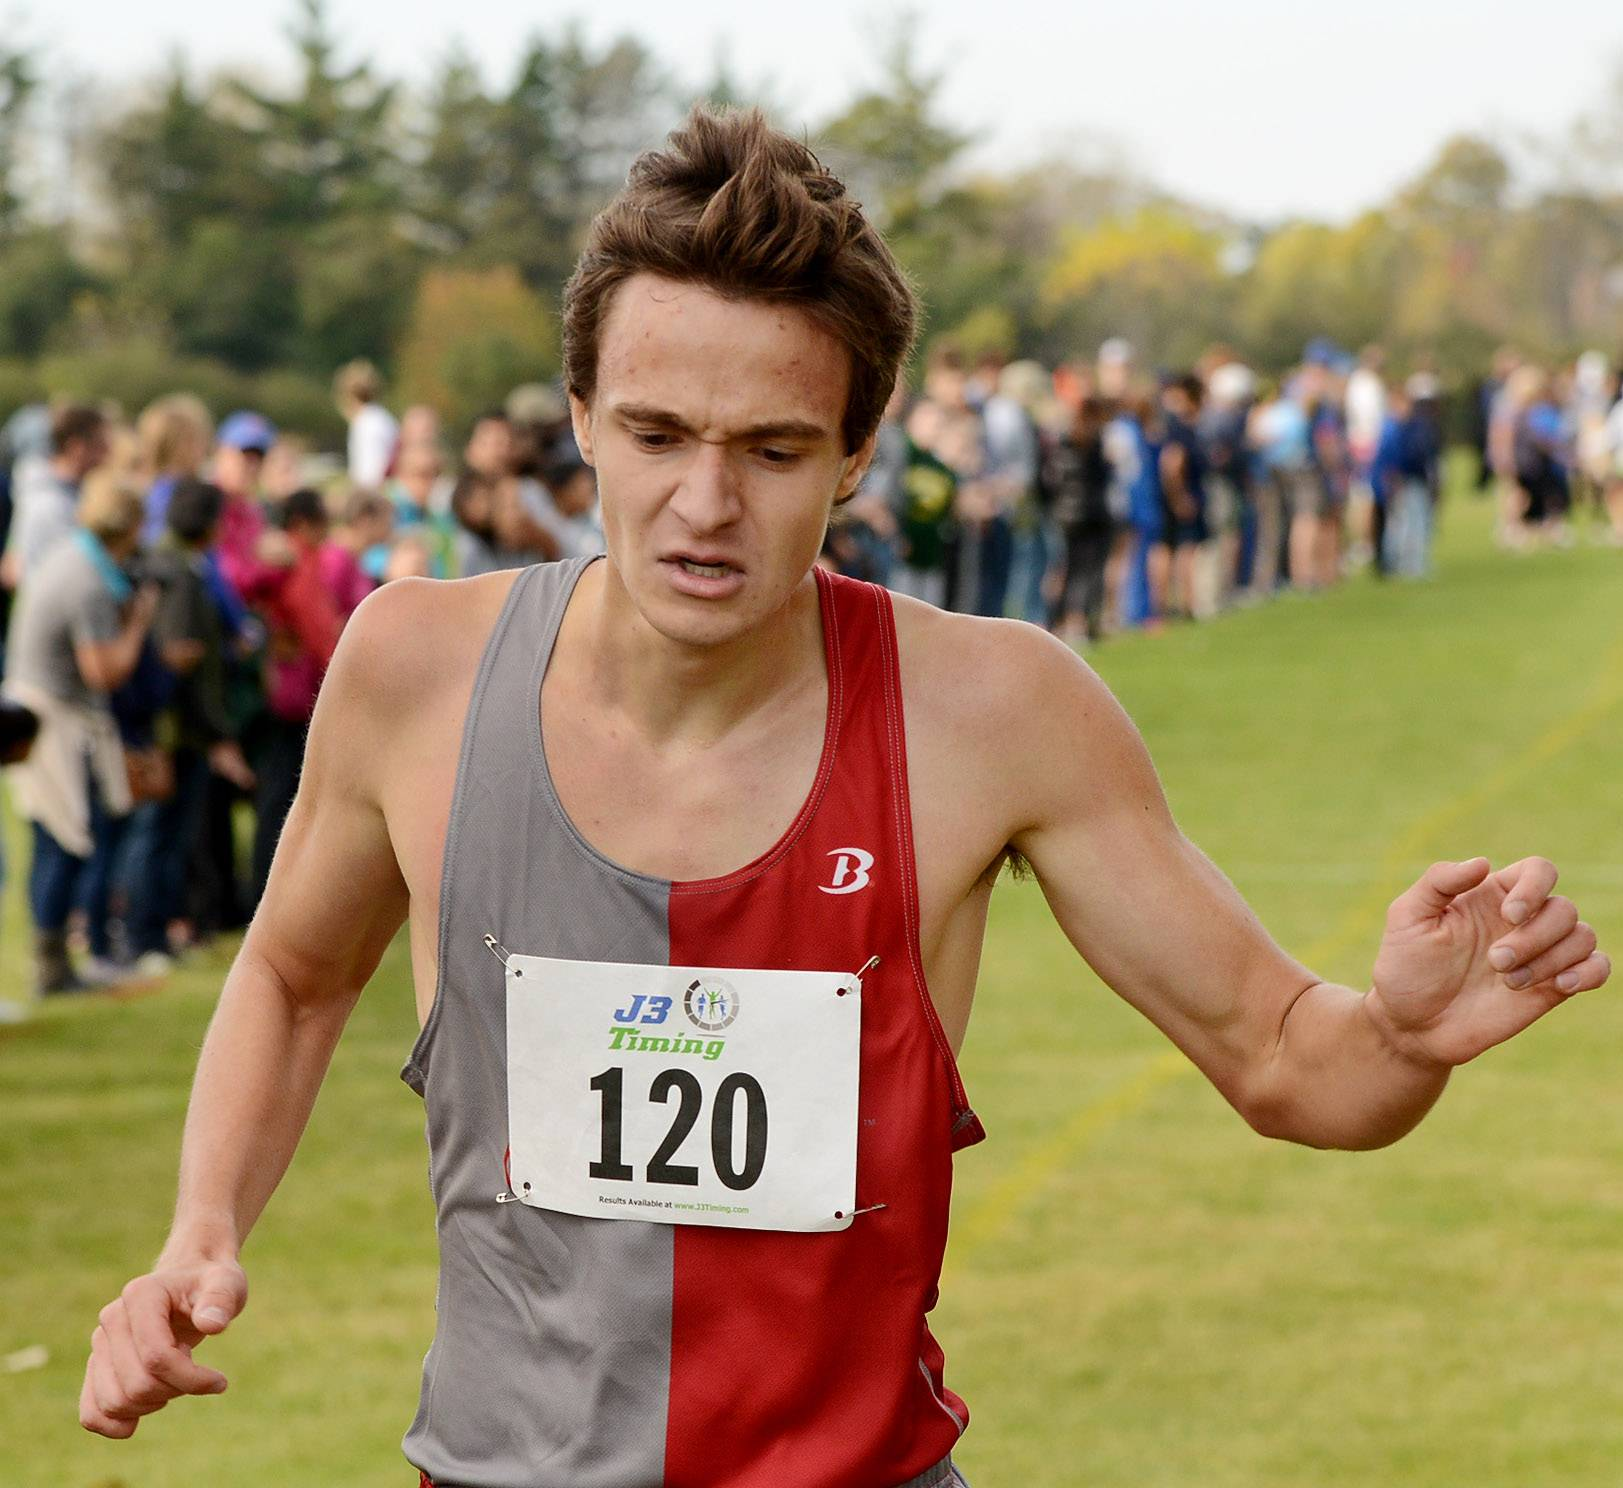 Mundelein's Robert St. Clair finishes third in 15:00.6 during the Class 3A Lake Forest cross country regional.